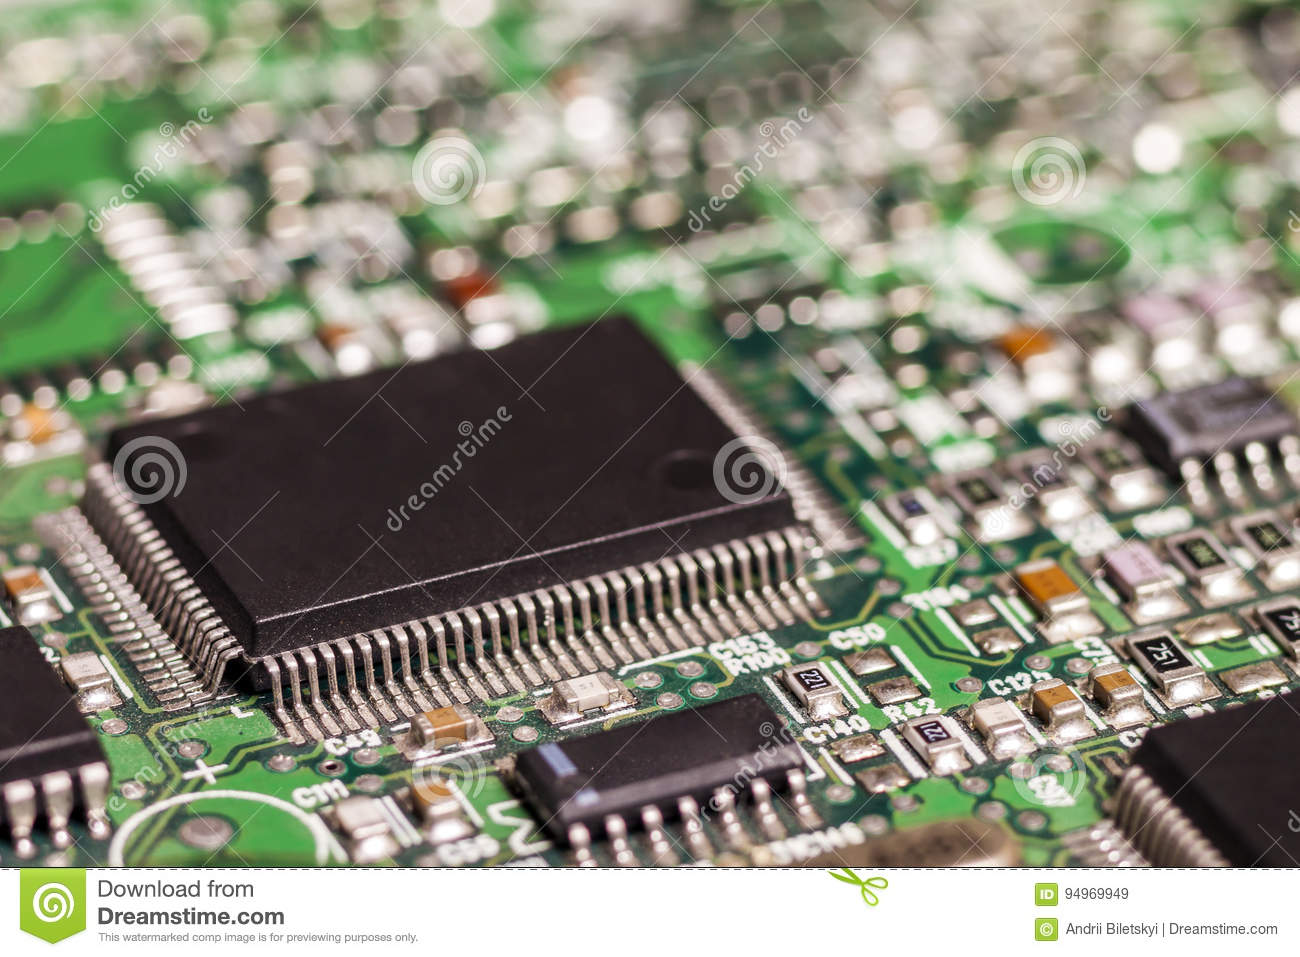 Circuit board. Electronic computer hardware technology. Motherboard digital chip. Tech science background. Integrated